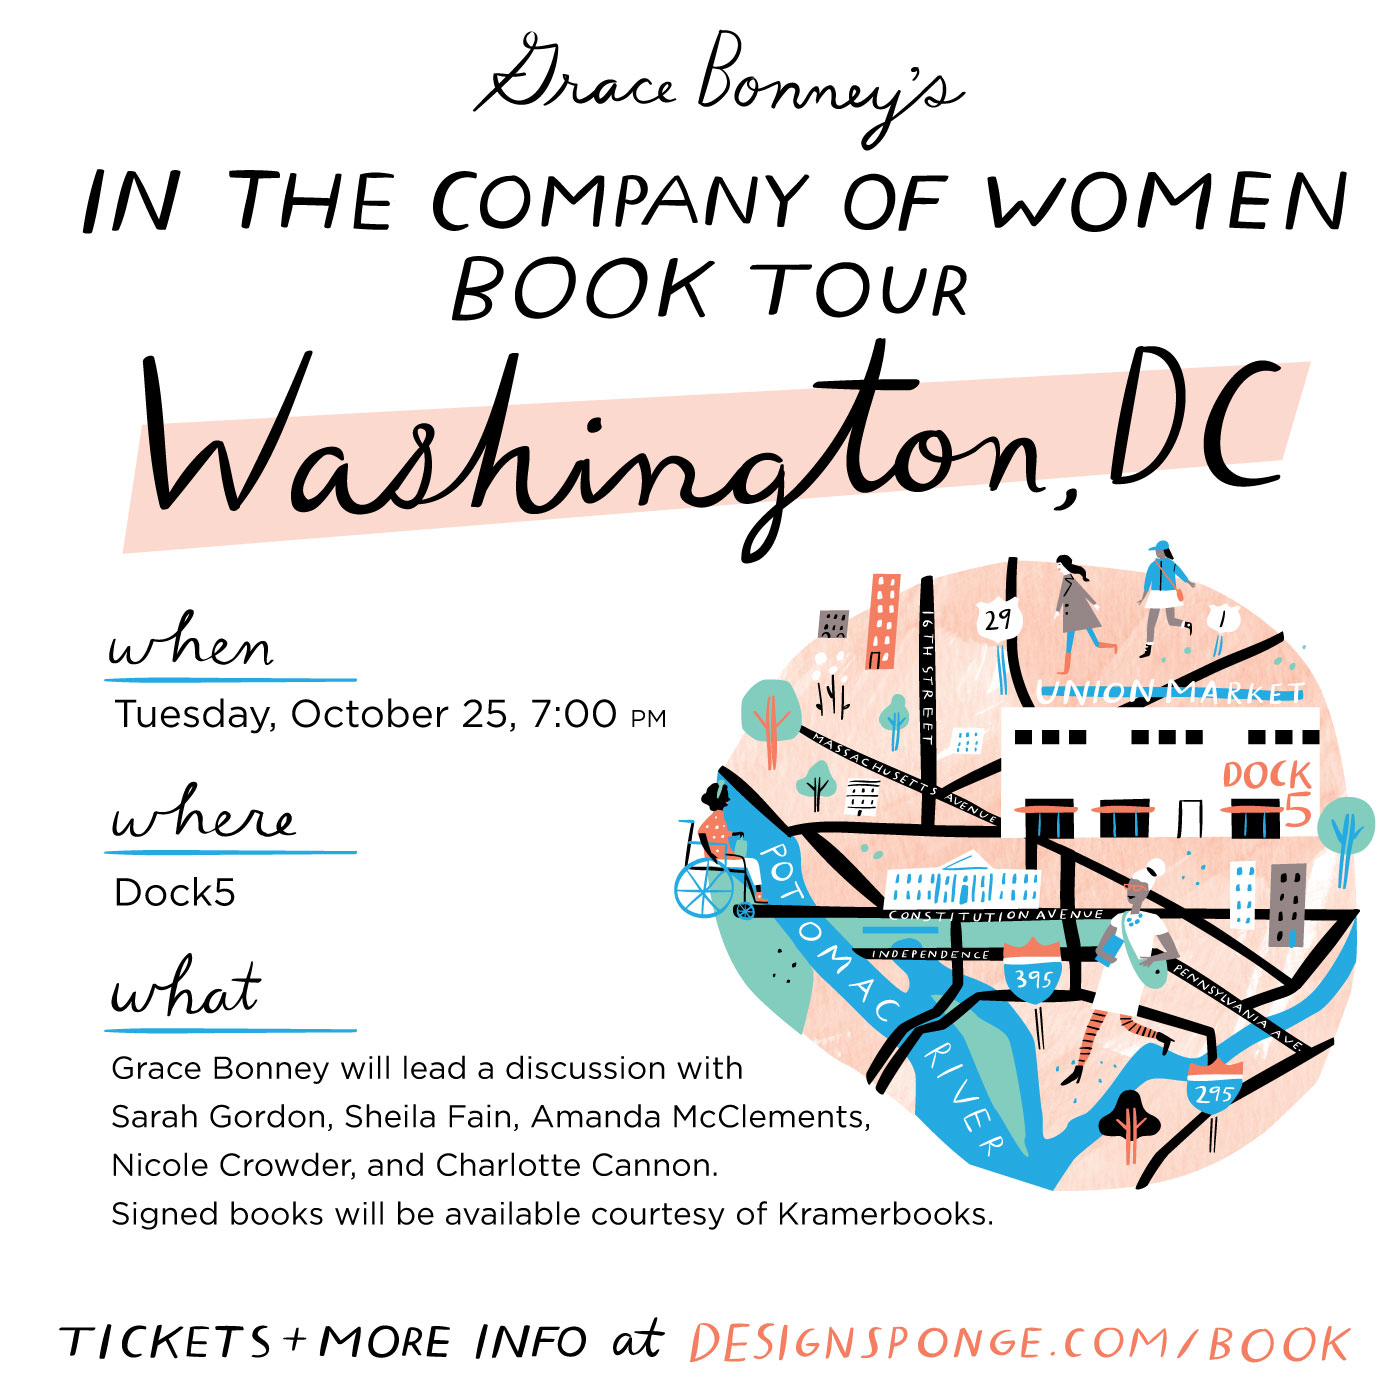 itcow_booktour_promos_cities_washintondc